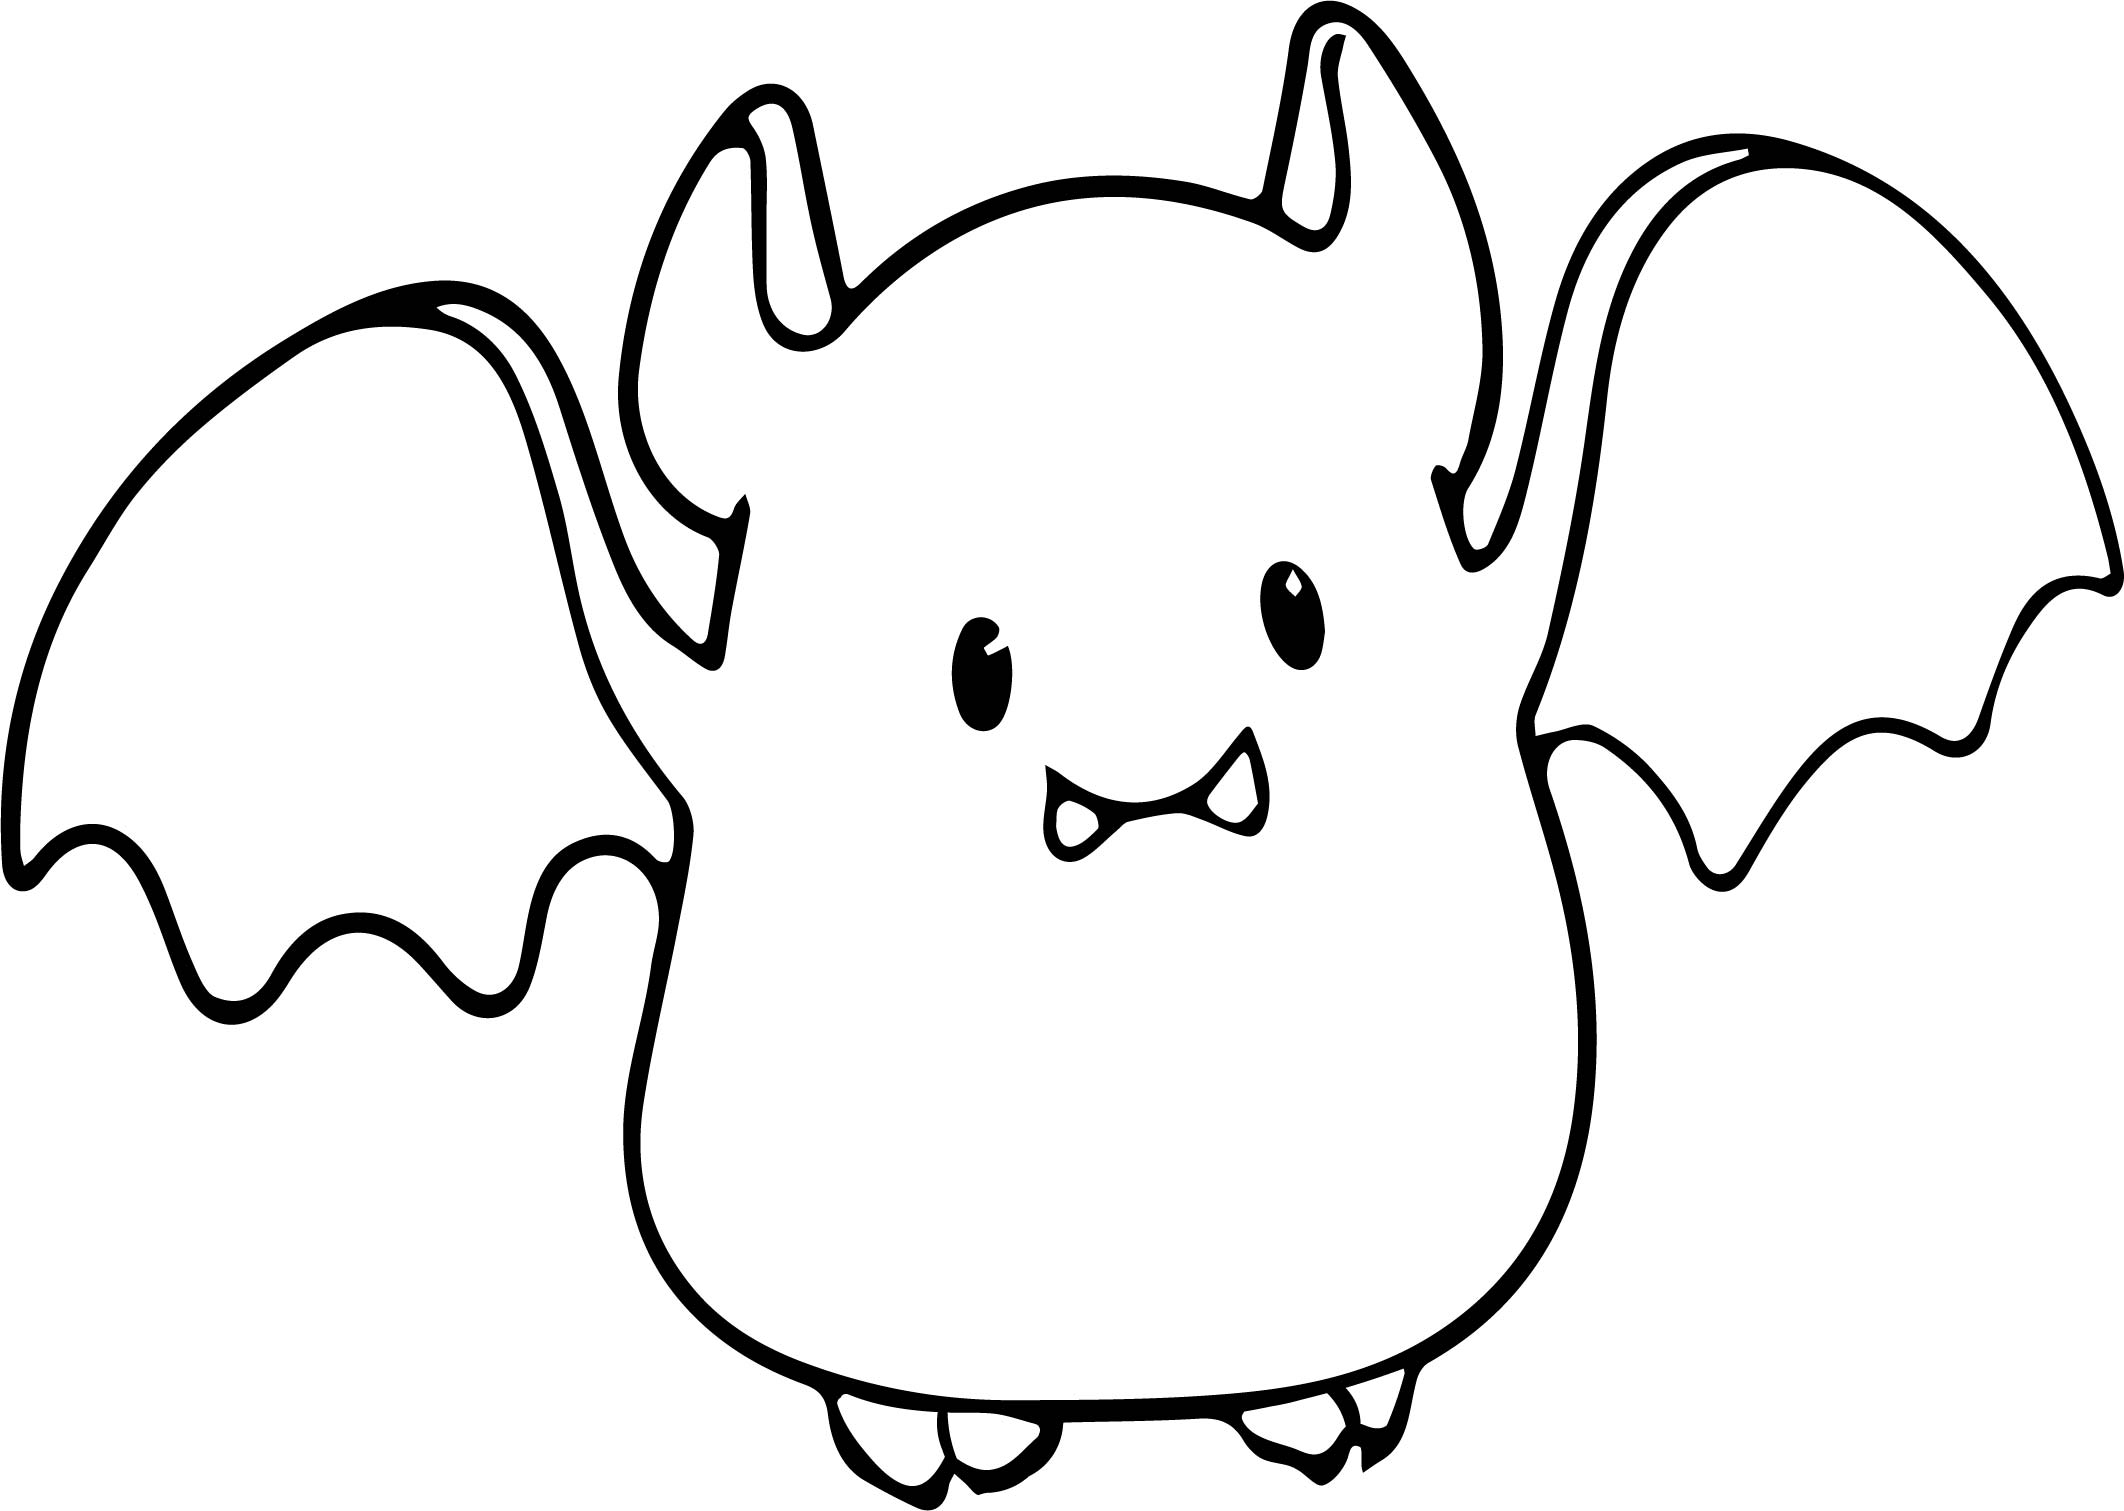 Small Cute Baby Cartoon Vampire Bat Coloring Page